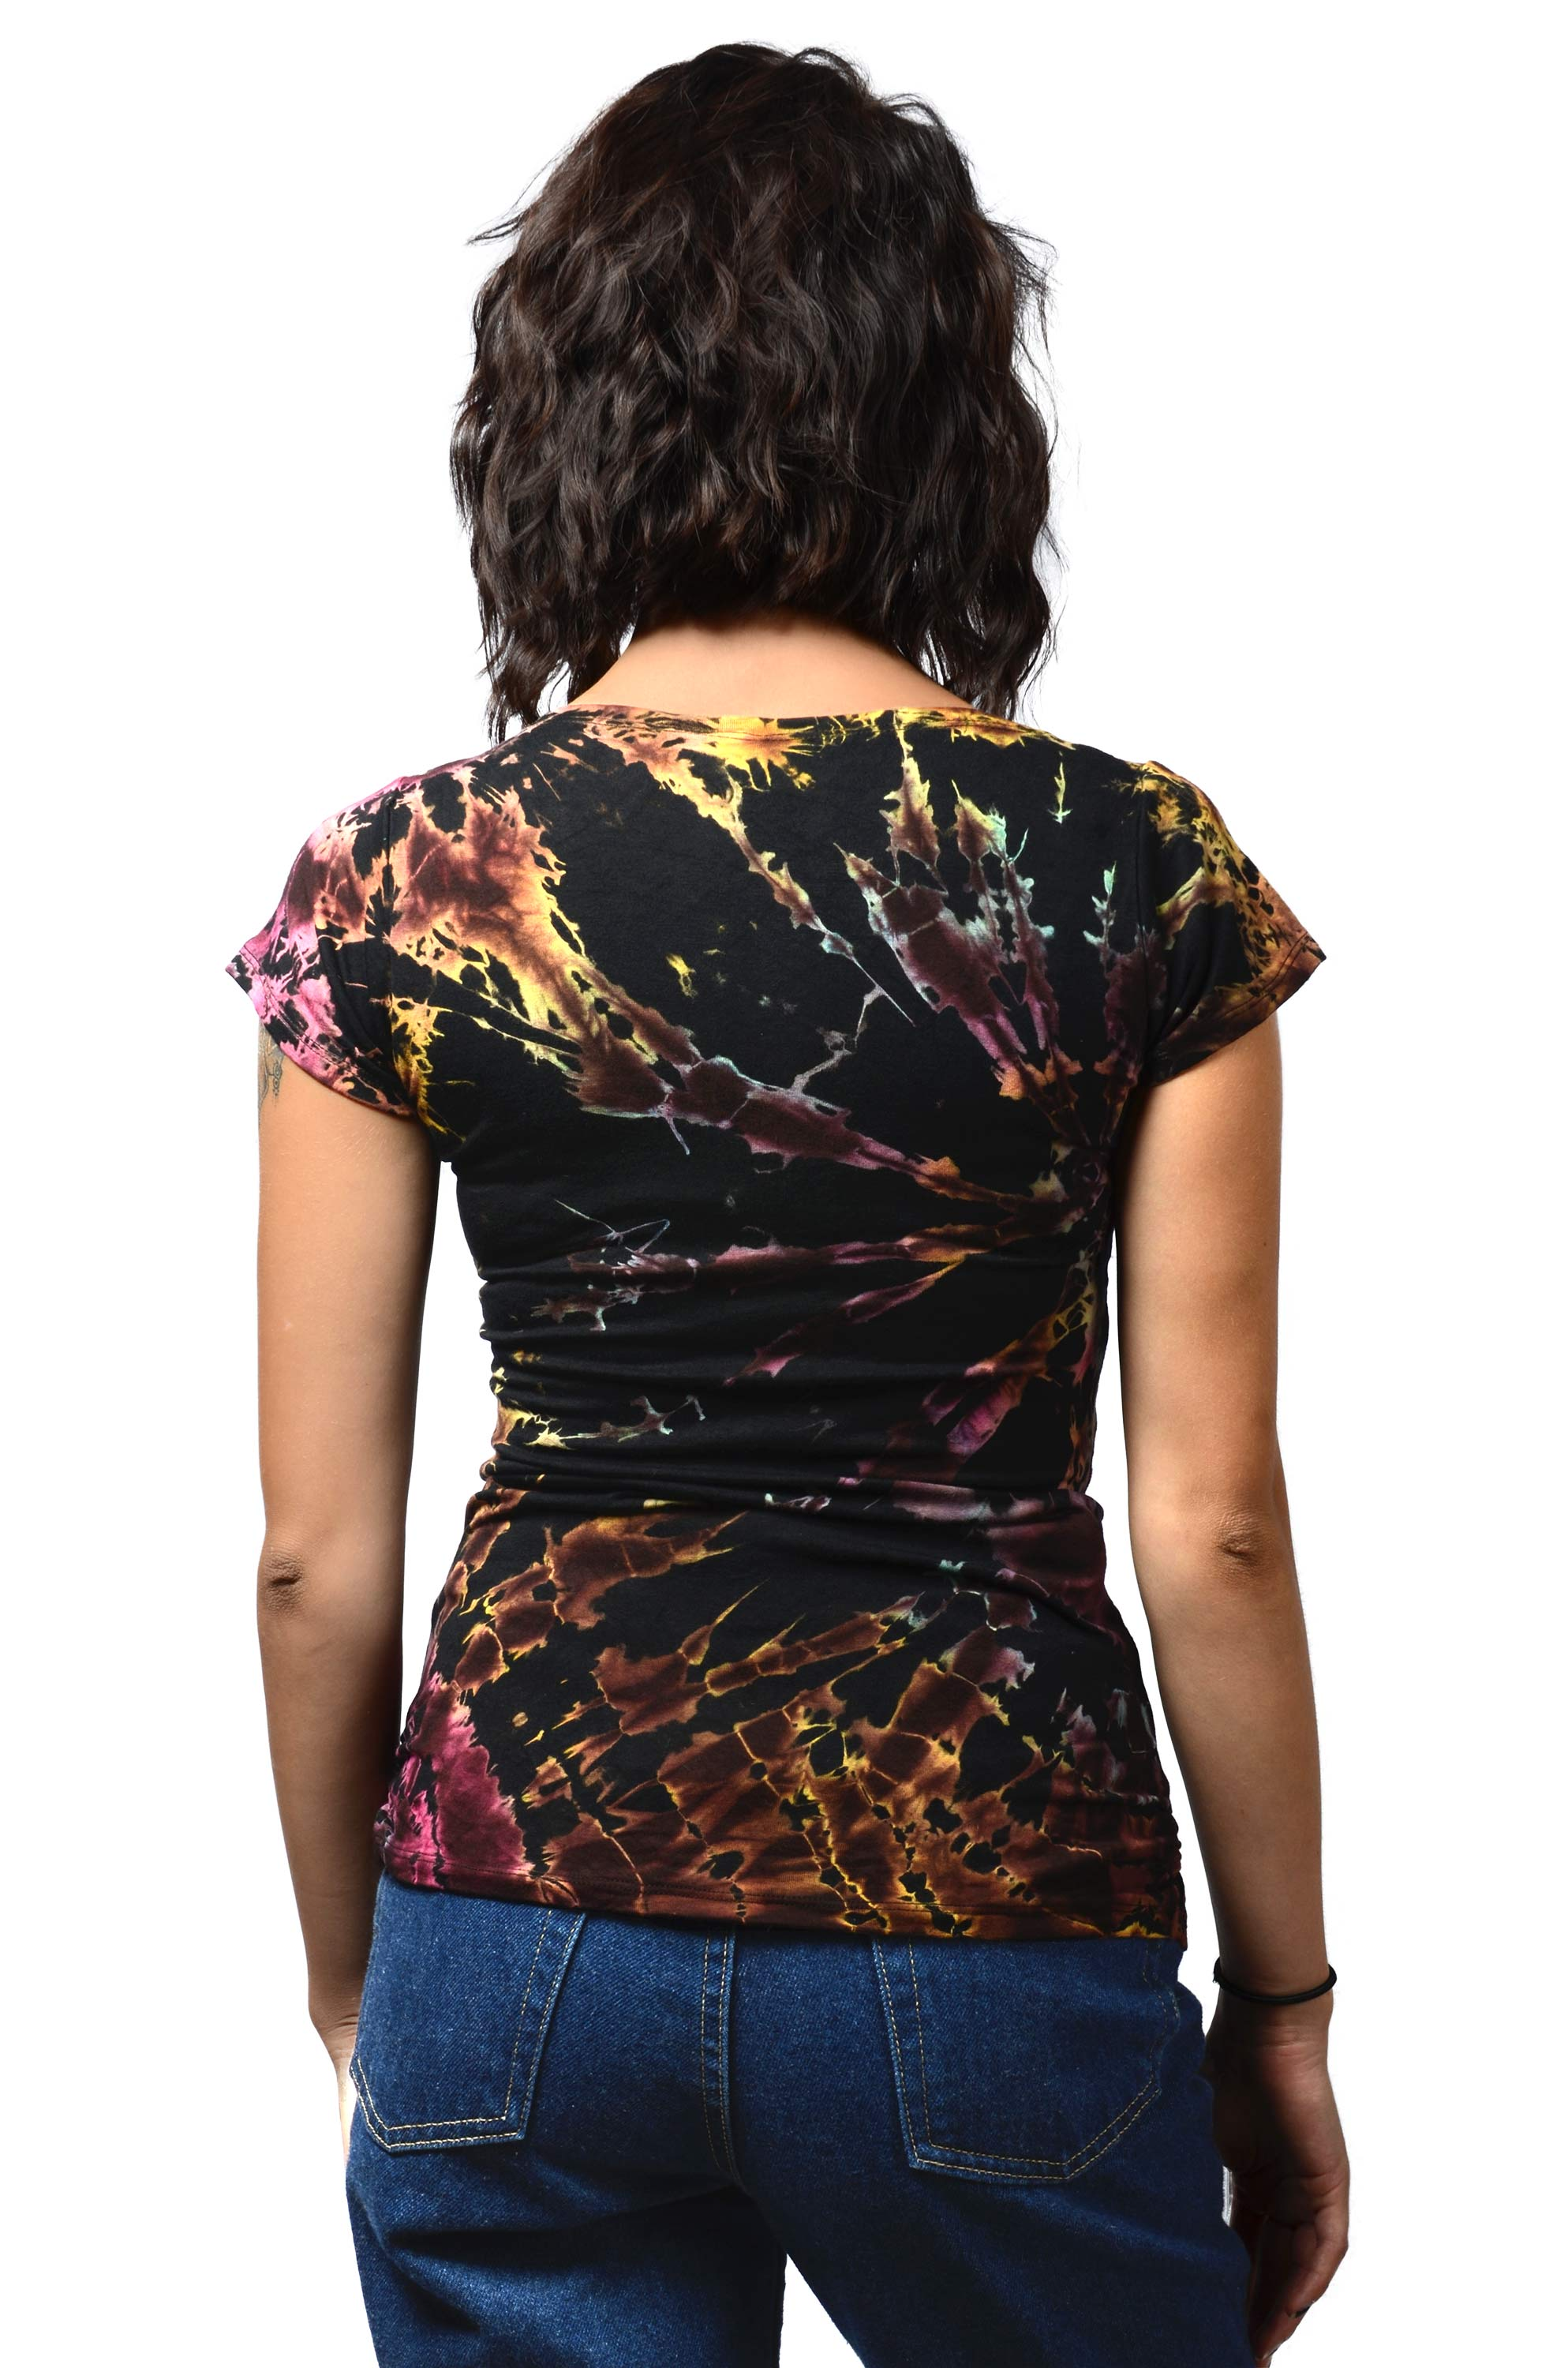 Short Sleeve V-neck Tee Hand Painted Tie Dye - Black Multi